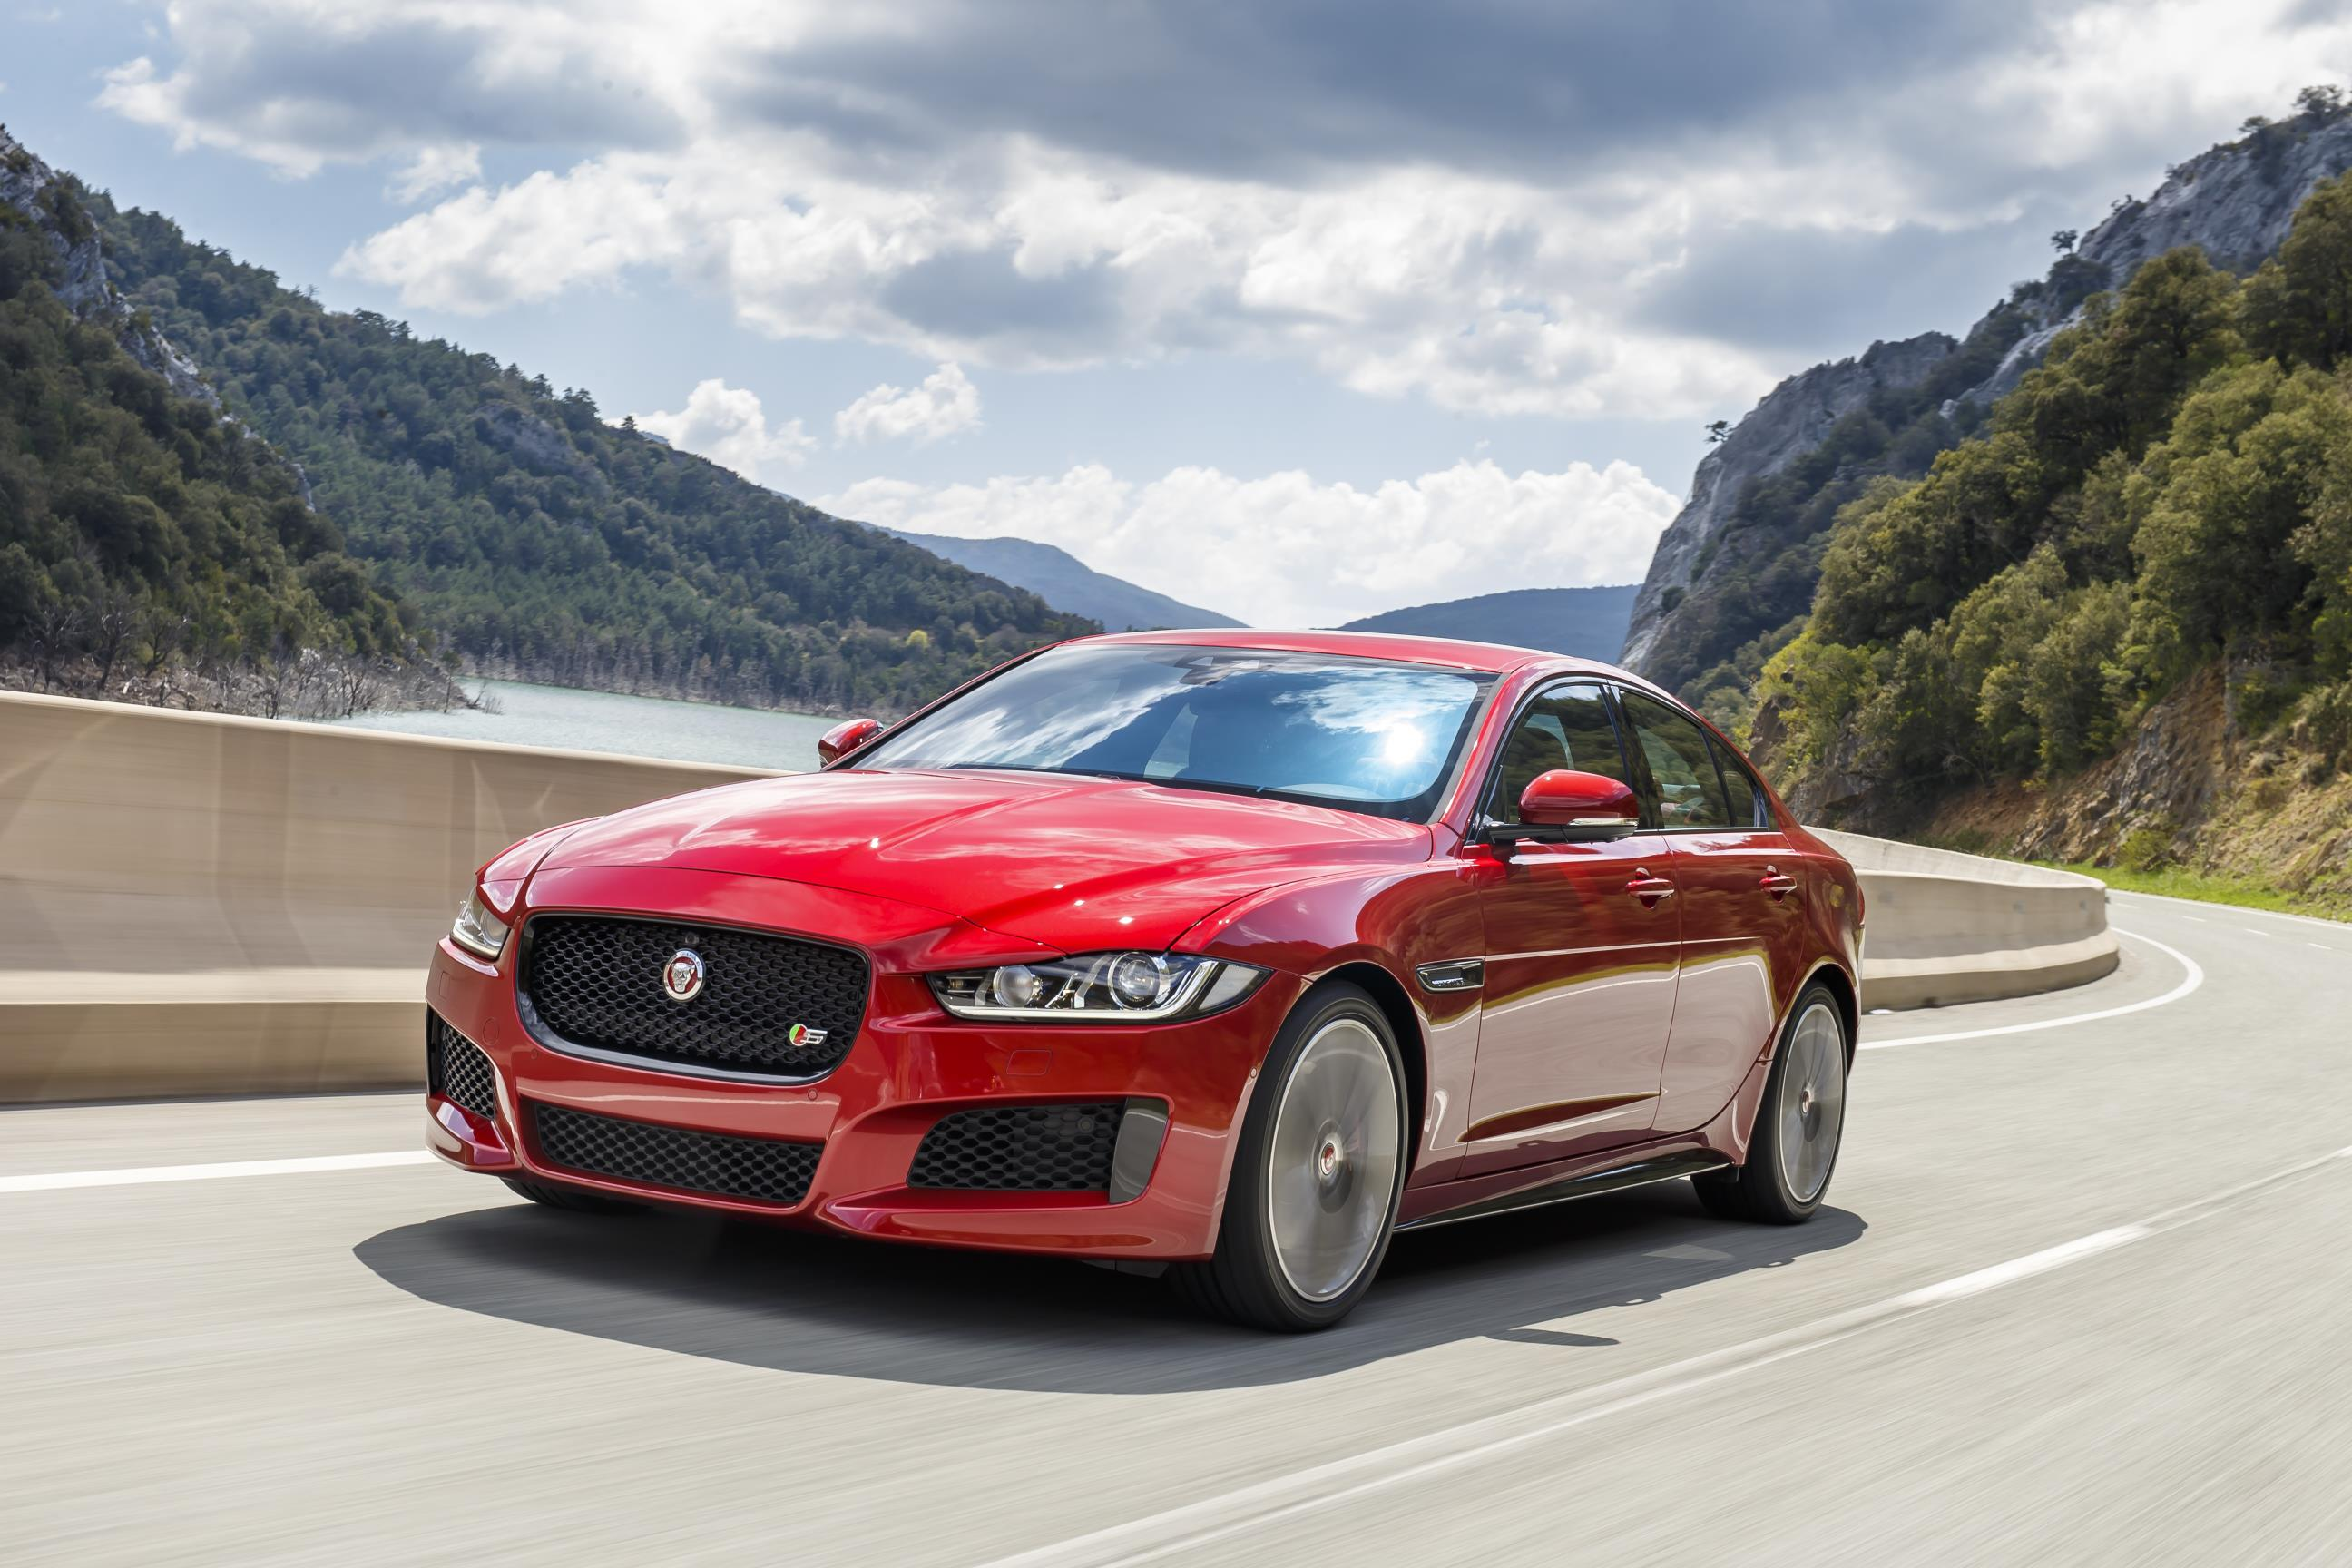 New 300PS petrol engine for Jaguar XE, XF and F-Pace